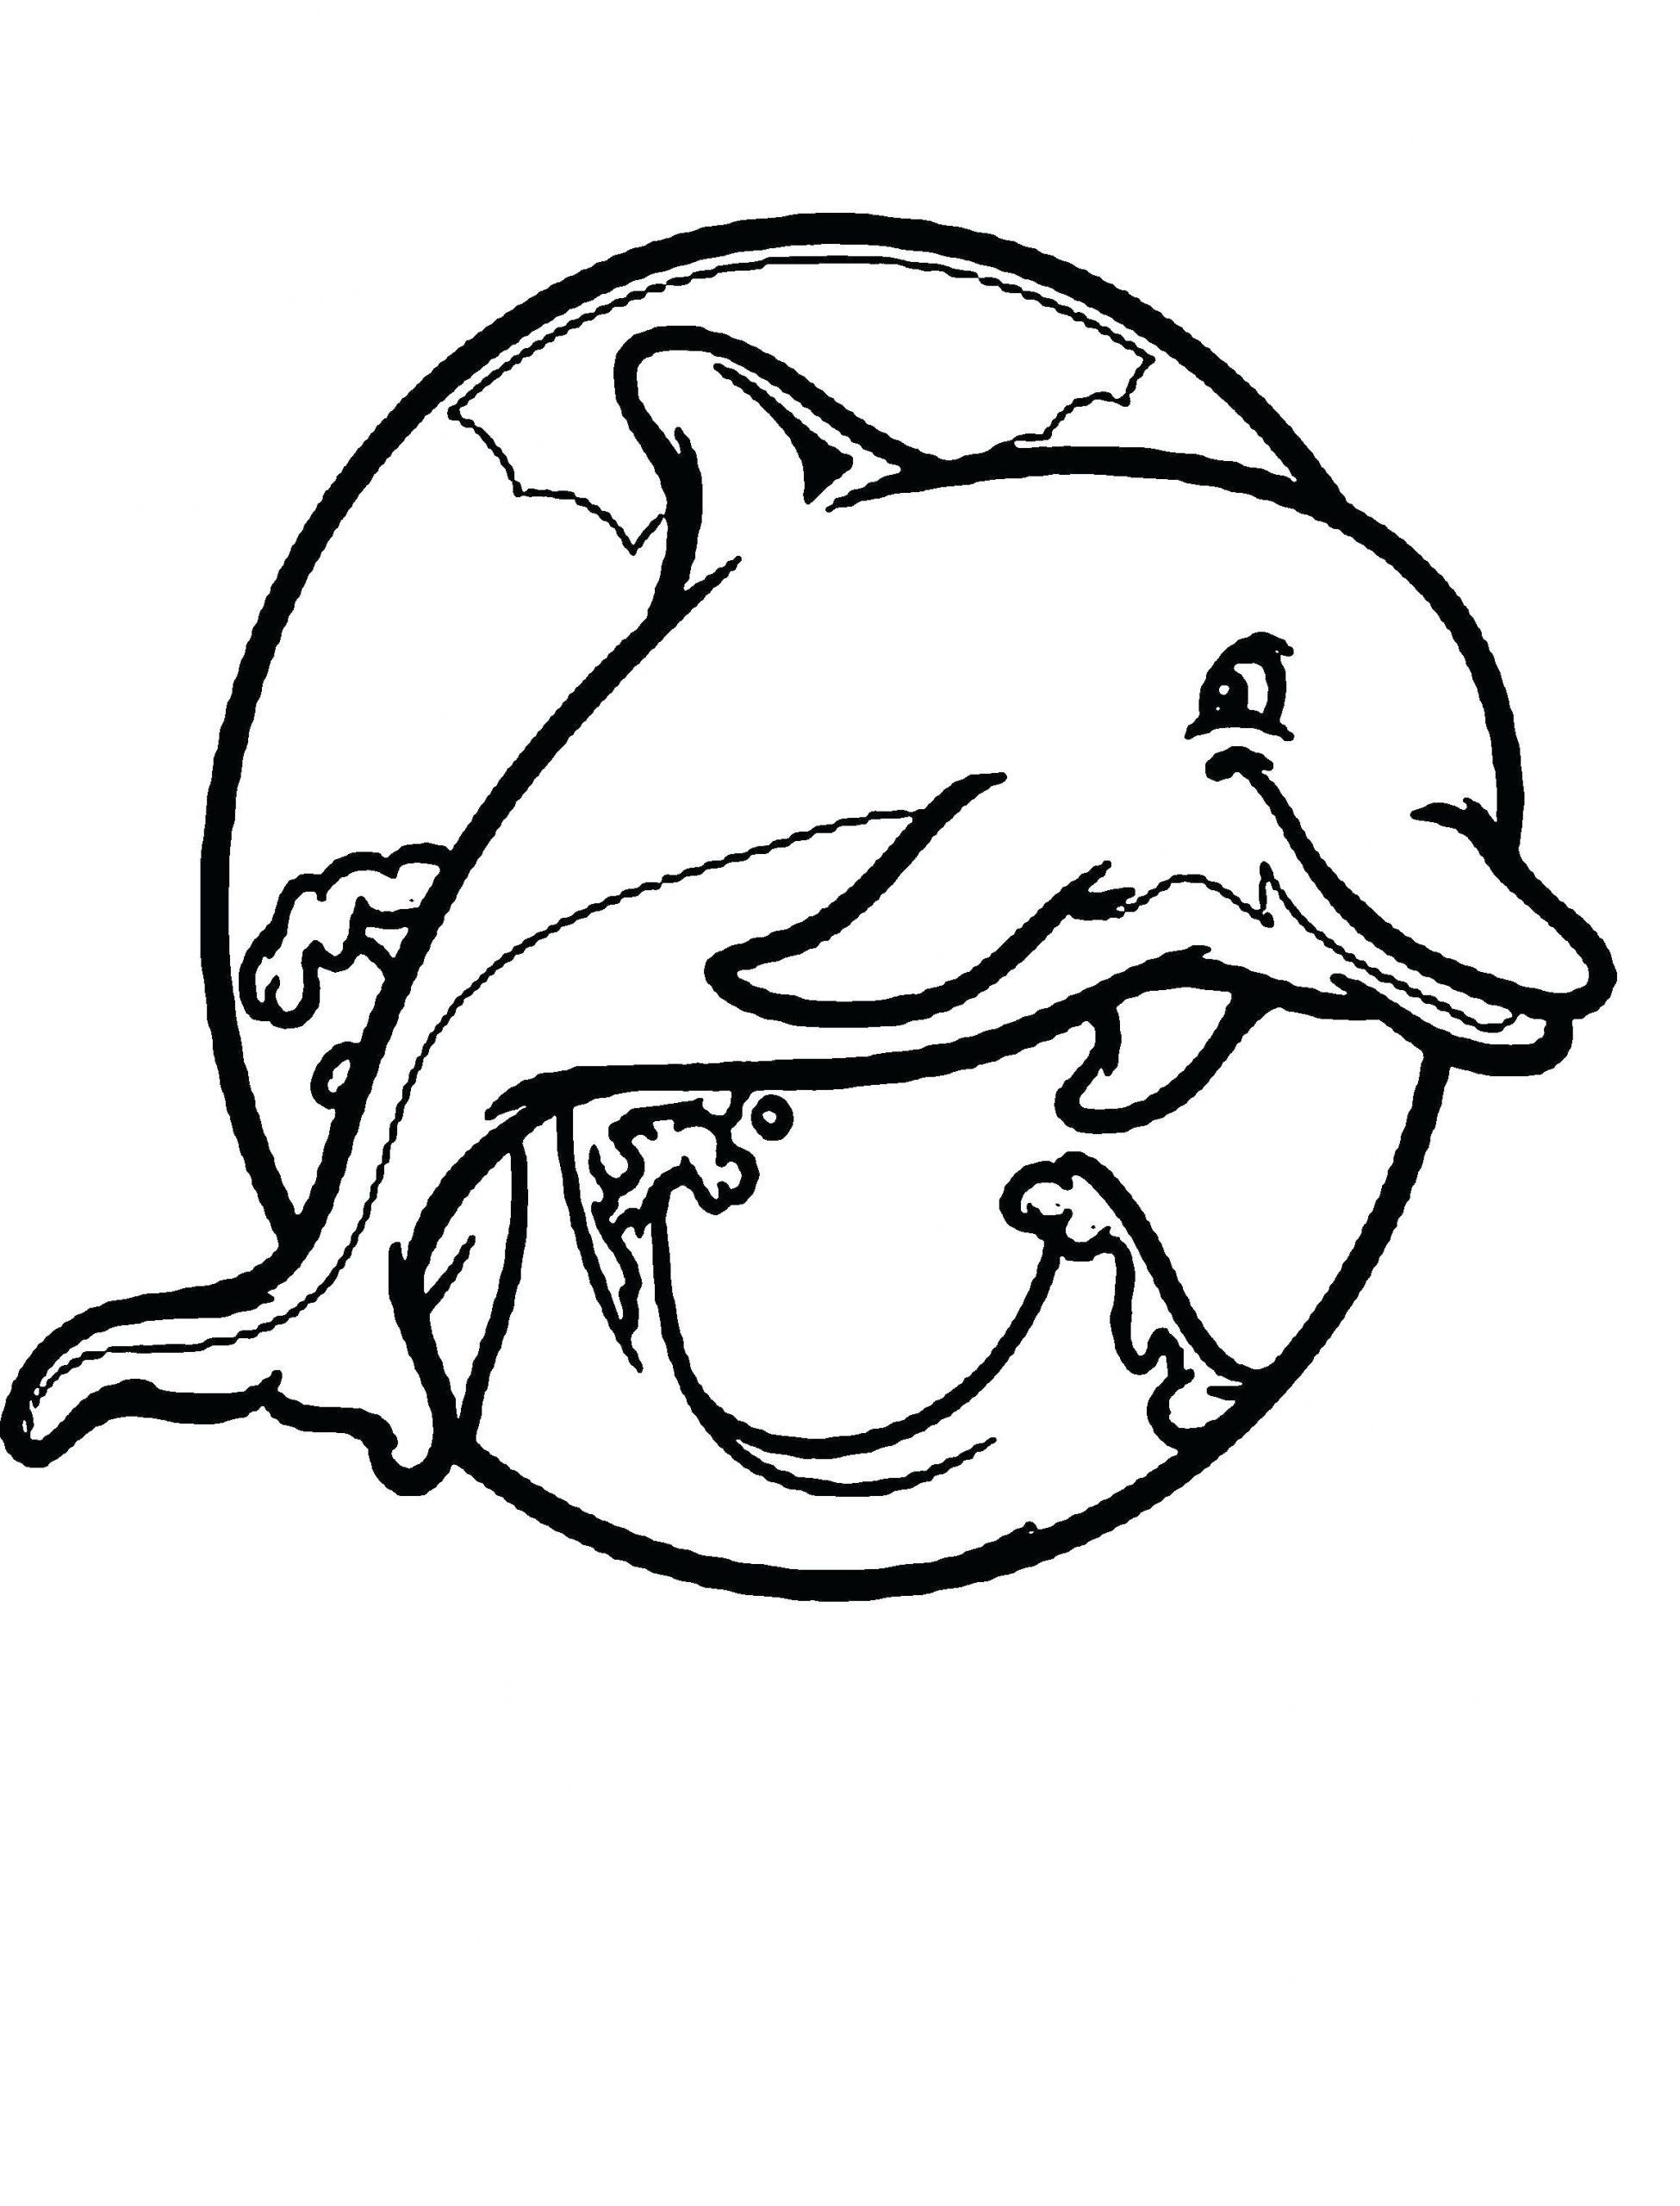 20 Baby Dolphin Coloring Pages in 2020 Dolphin coloring